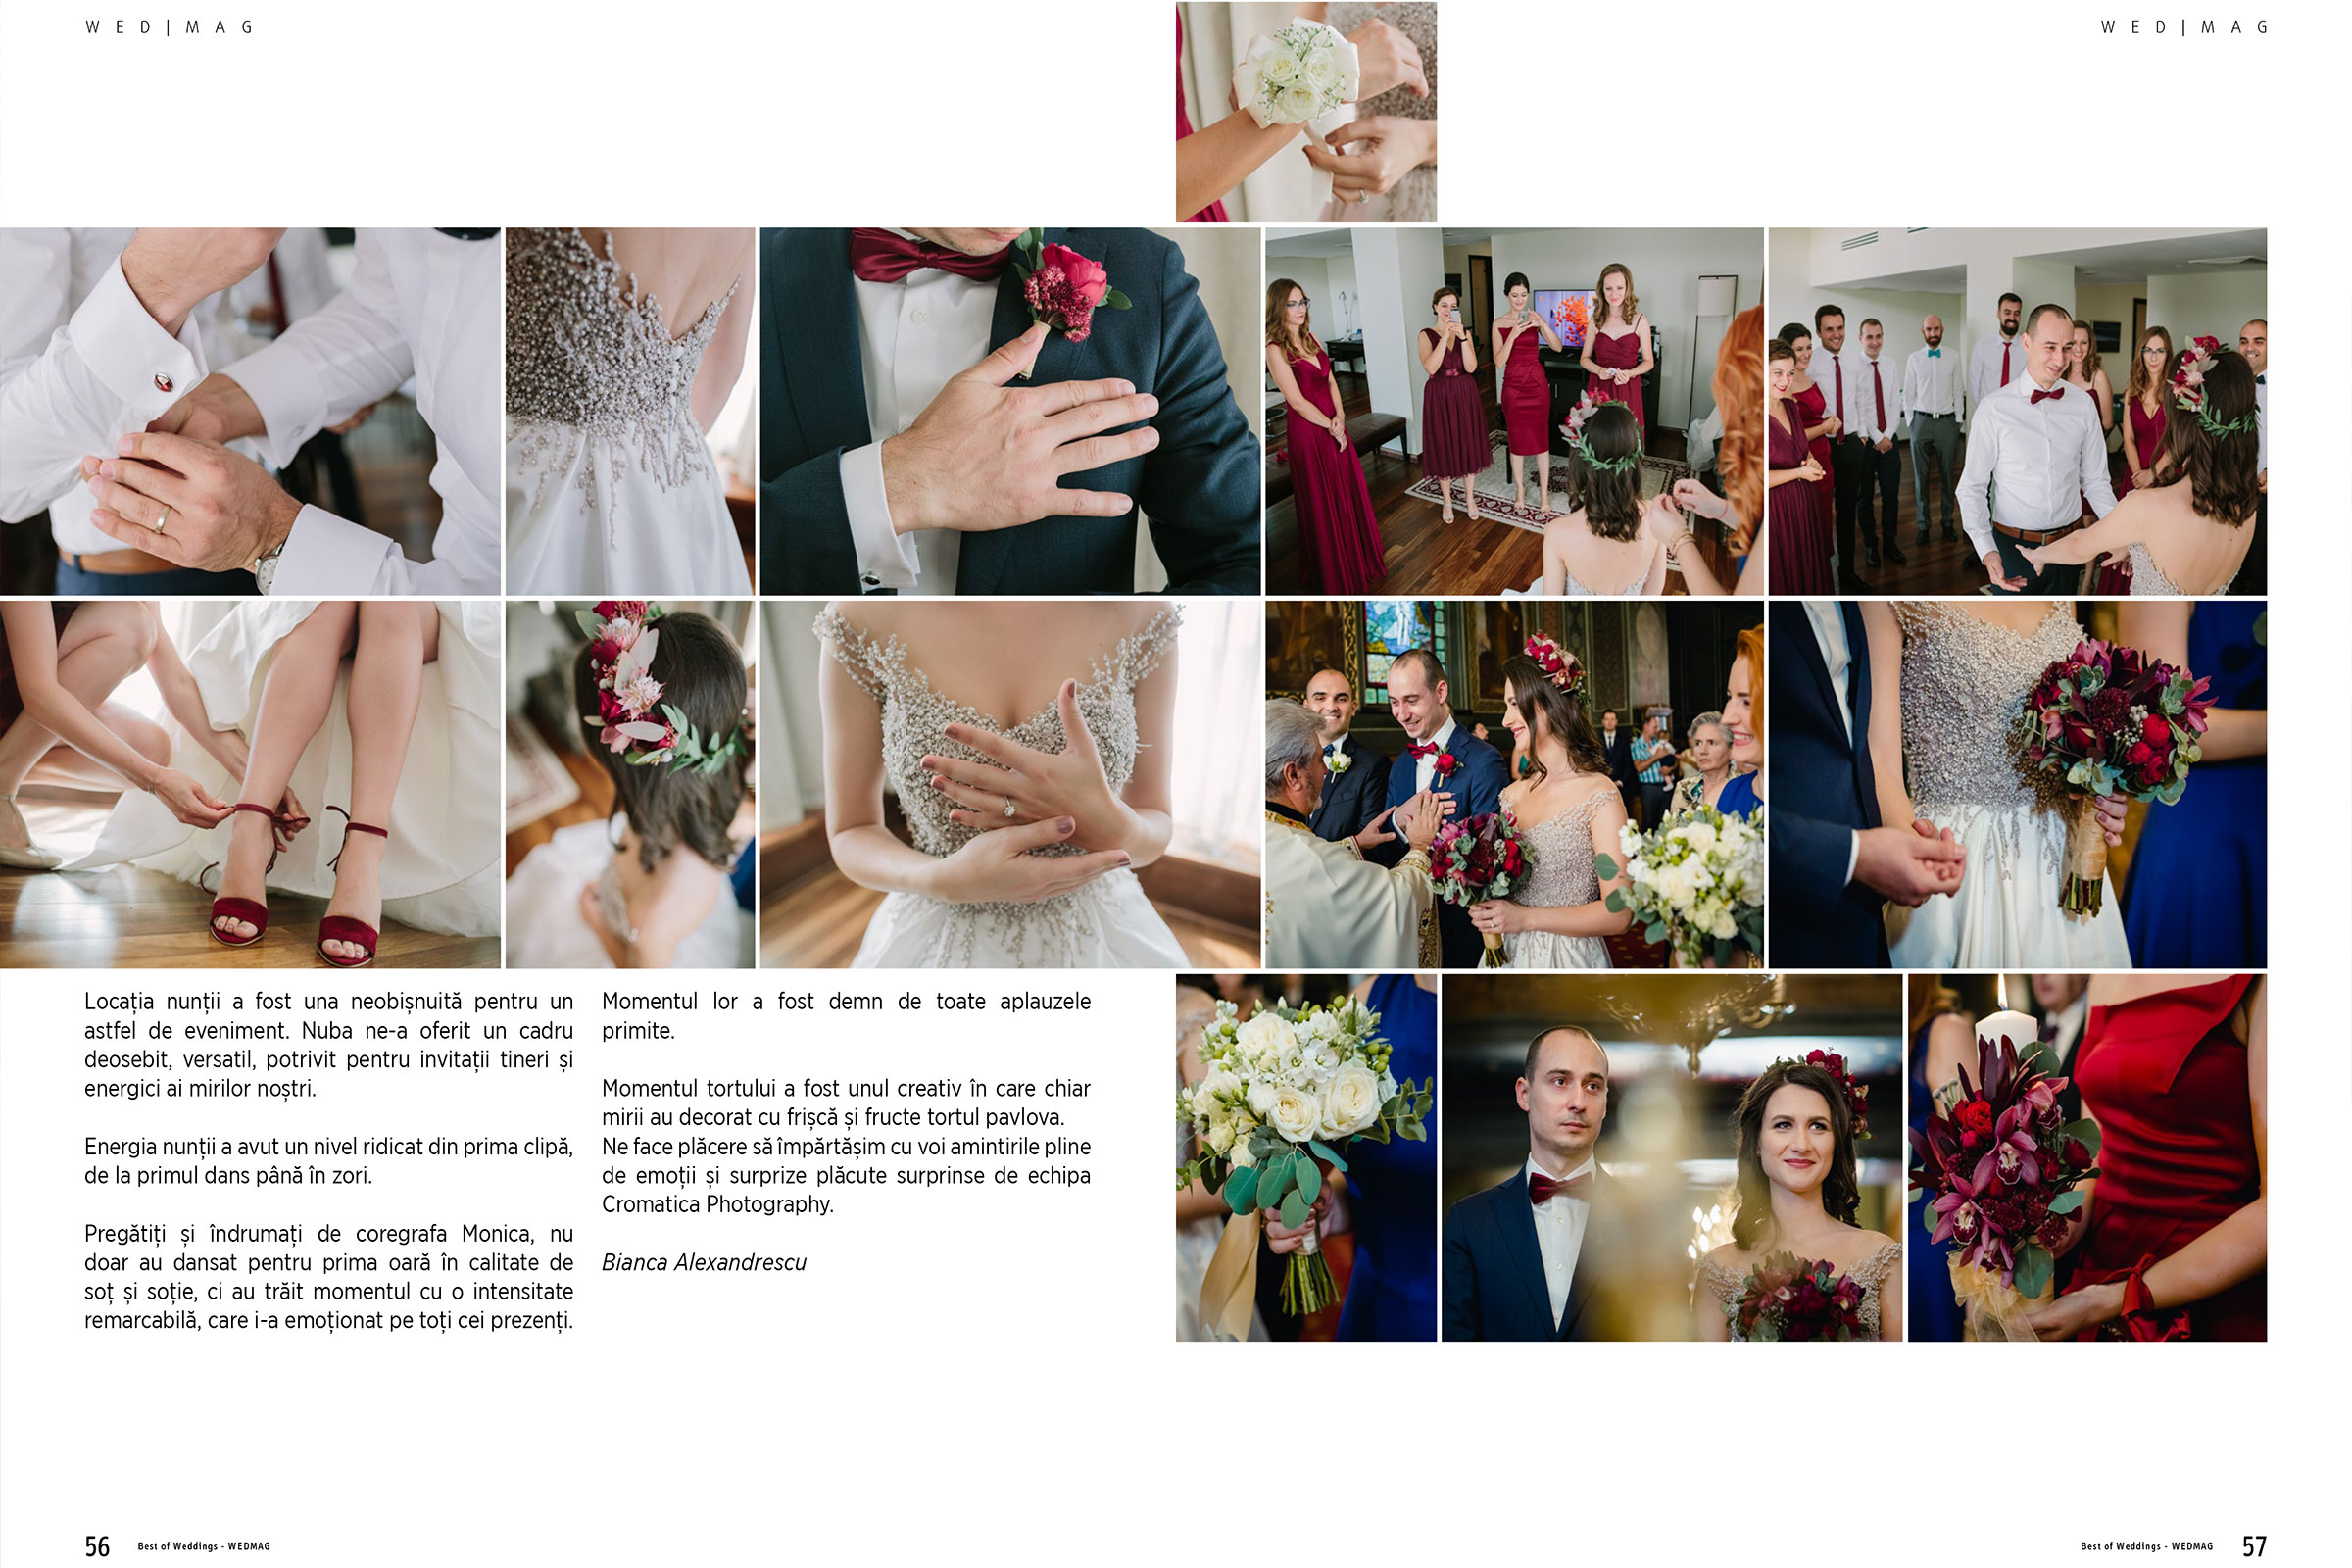 cromatica in best of weddings 2018 03